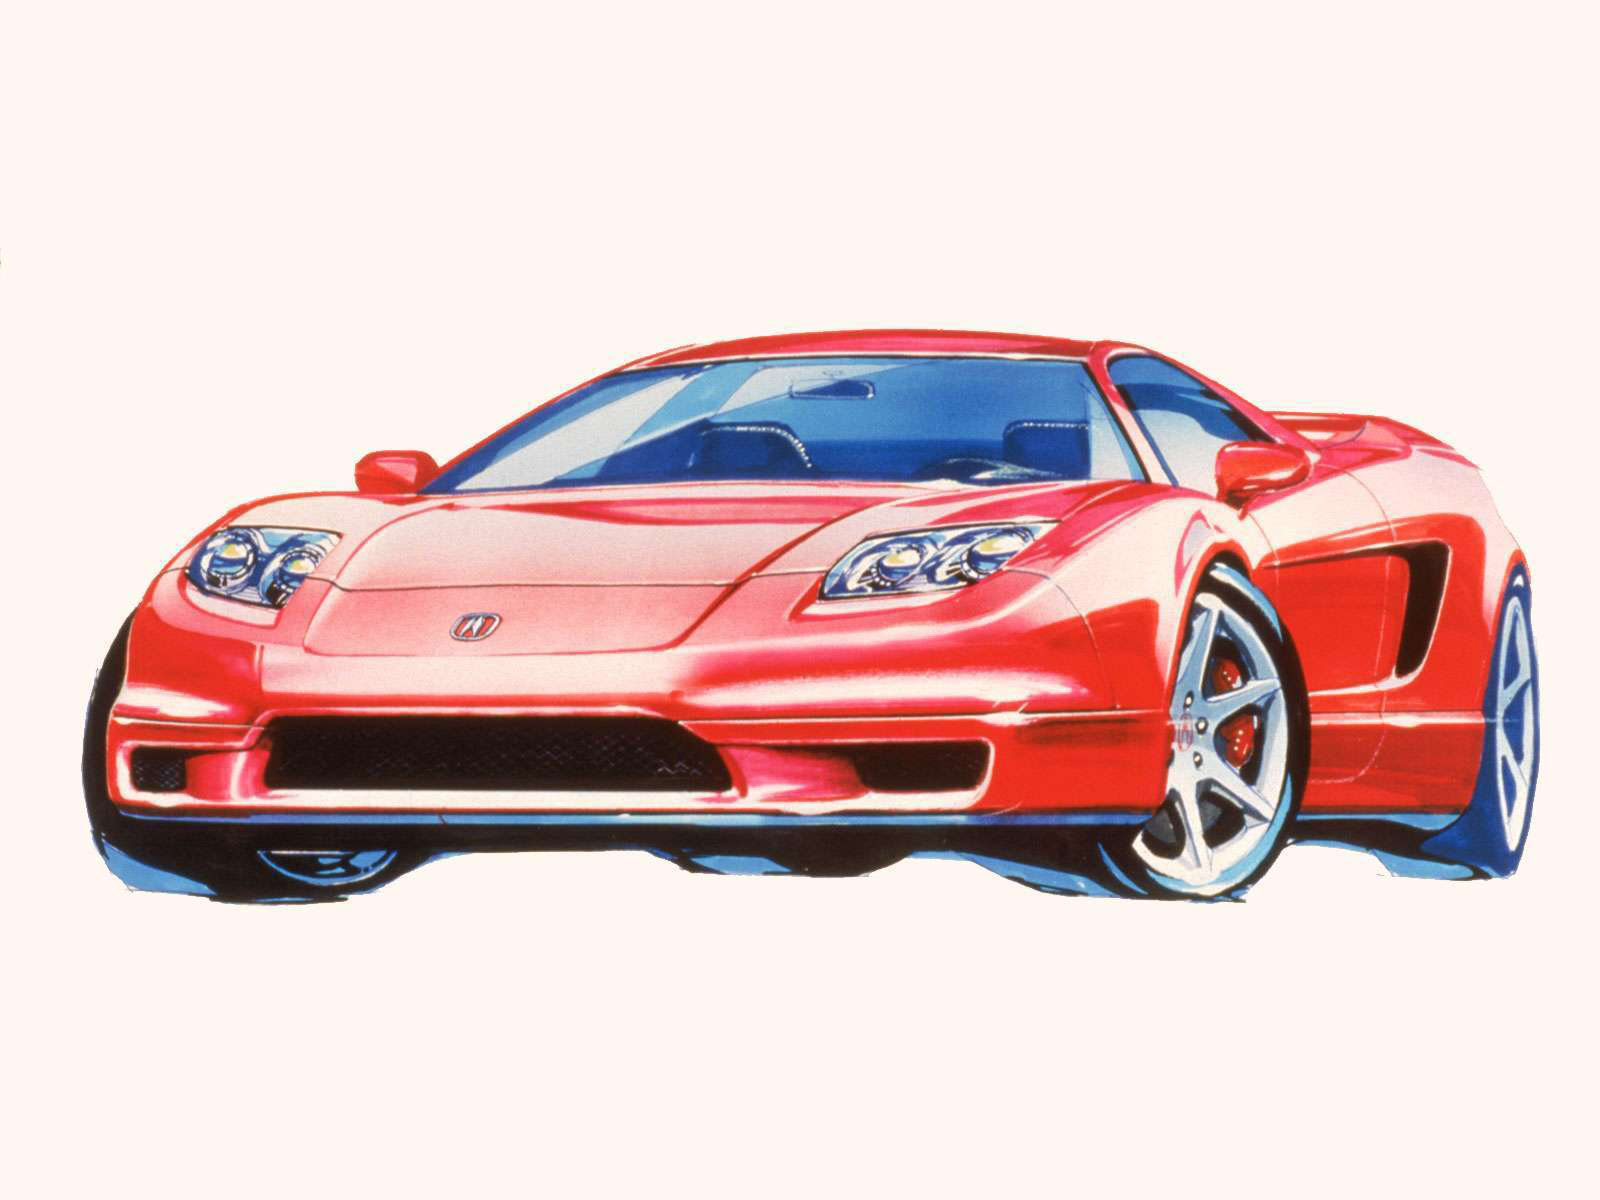 Image 11 Of 46 2001 Acura Nsx T Car Photos Catalog 2018 Part Fuse Box 2002 Sketches Japanese